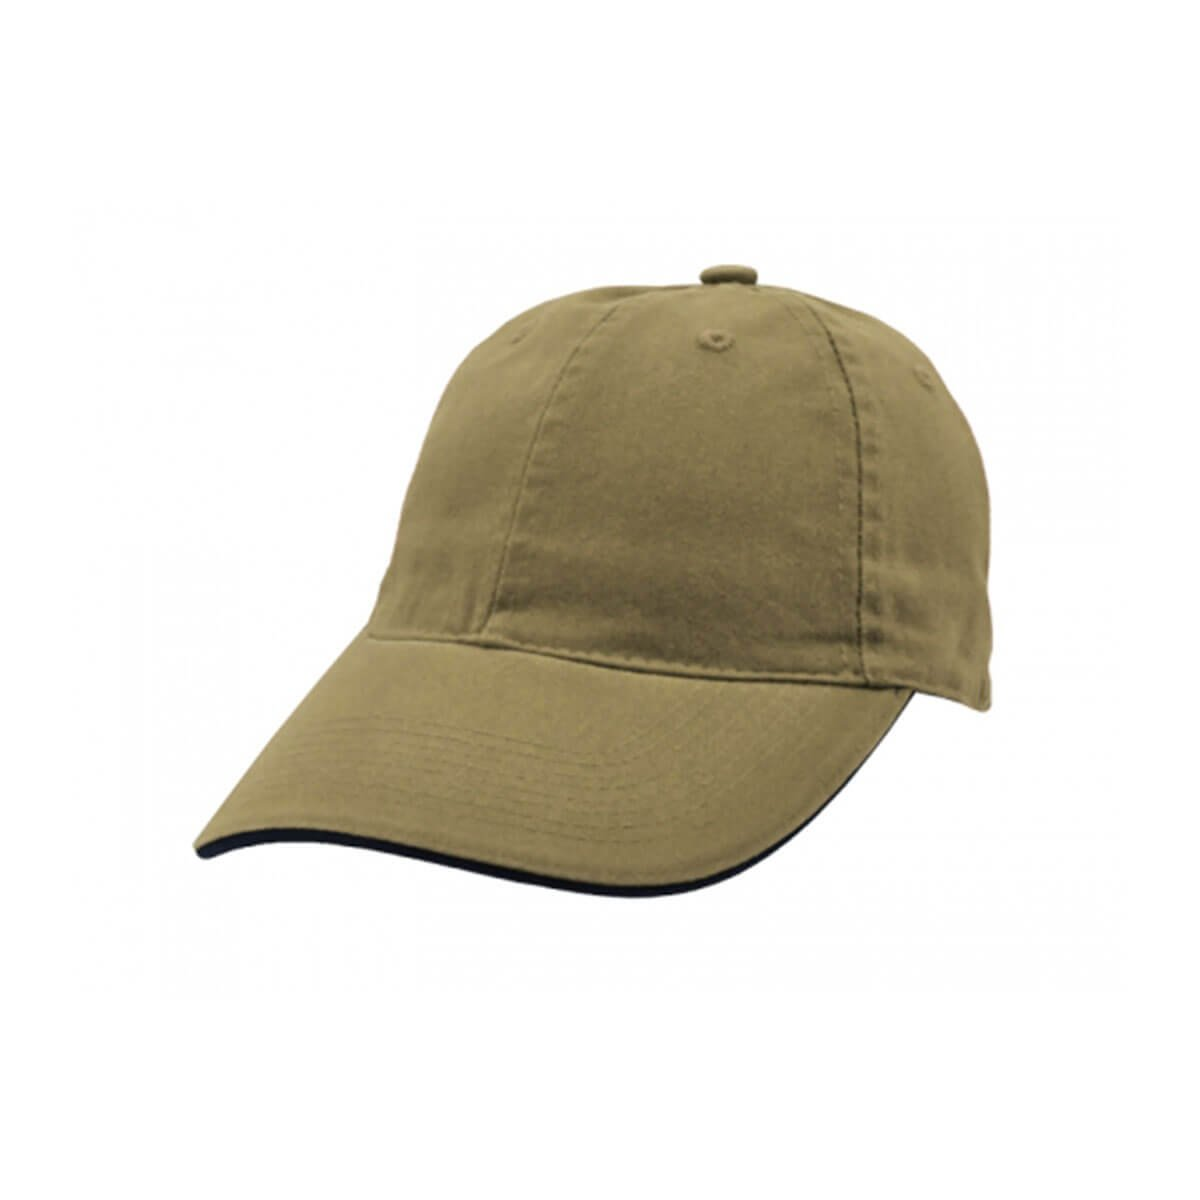 Enzyme Washed Cap with Sandwich-Khaki / Navy